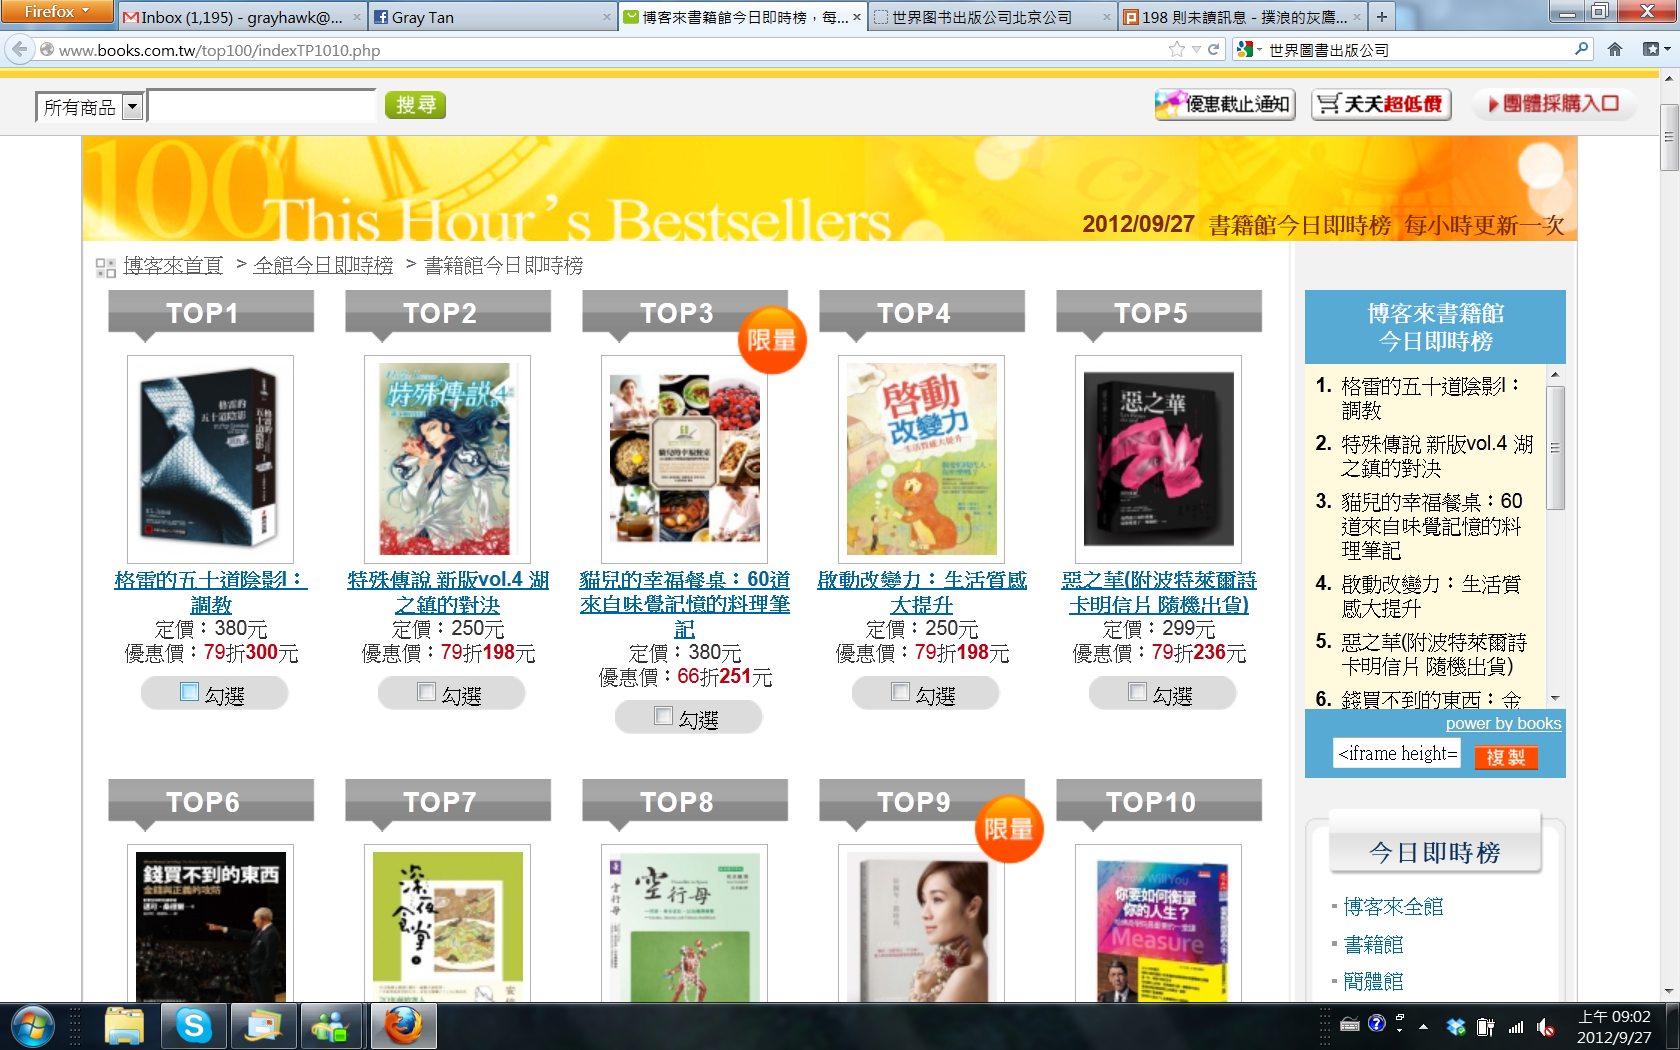 fifty shades of grey #1 in Taiwan